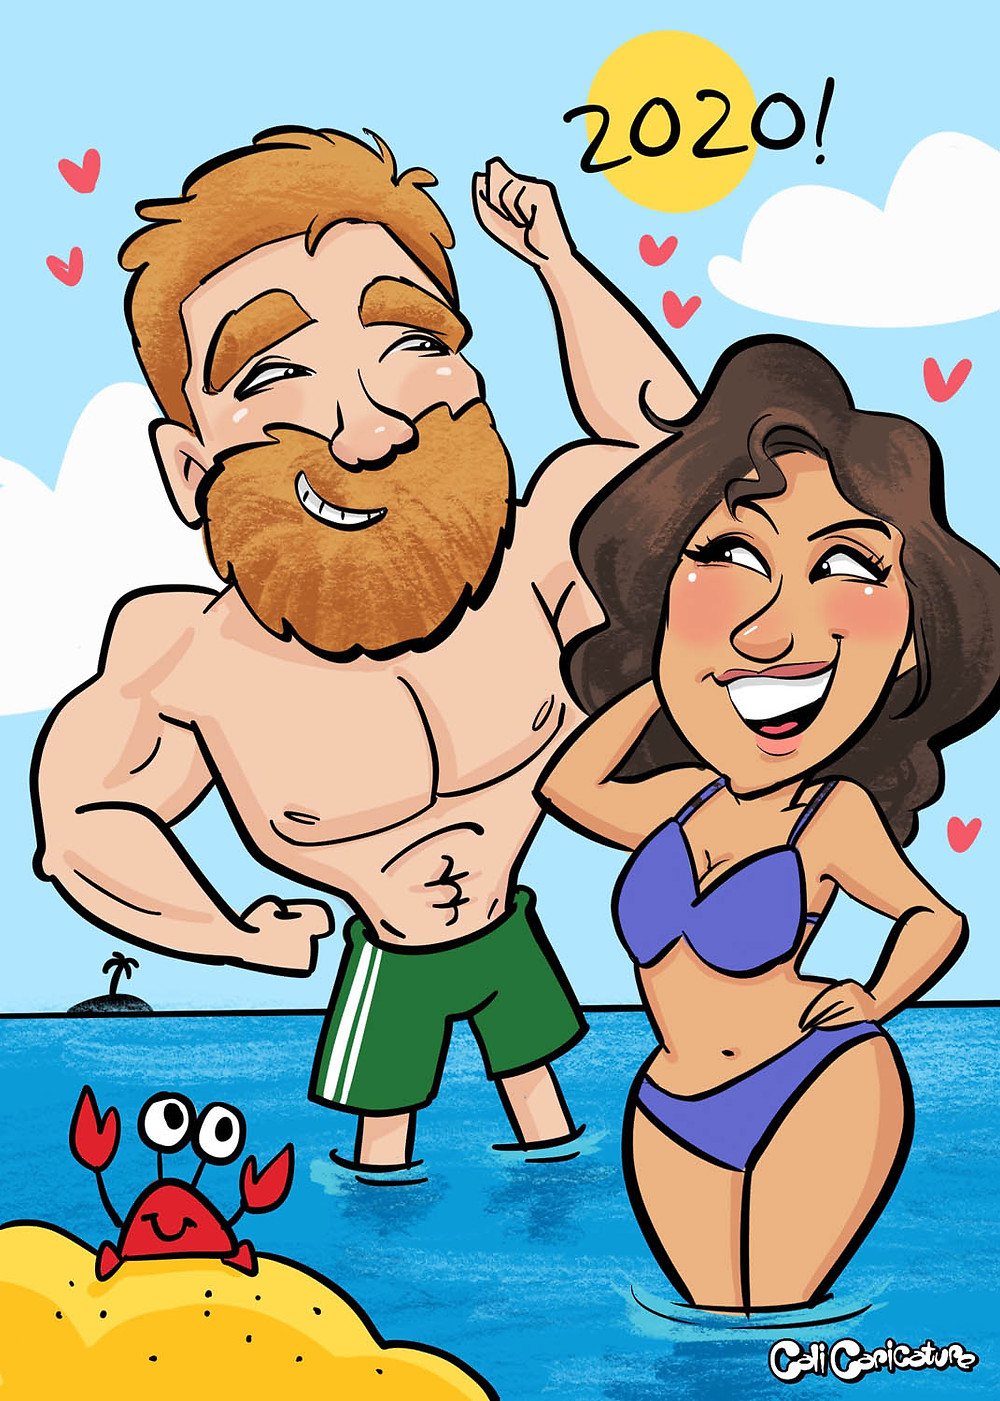 summer theme caricature covid covid19 caricatures cute couple drawing romance romantic beach bodies hot cartoon faces portrait digital art cali stay at home